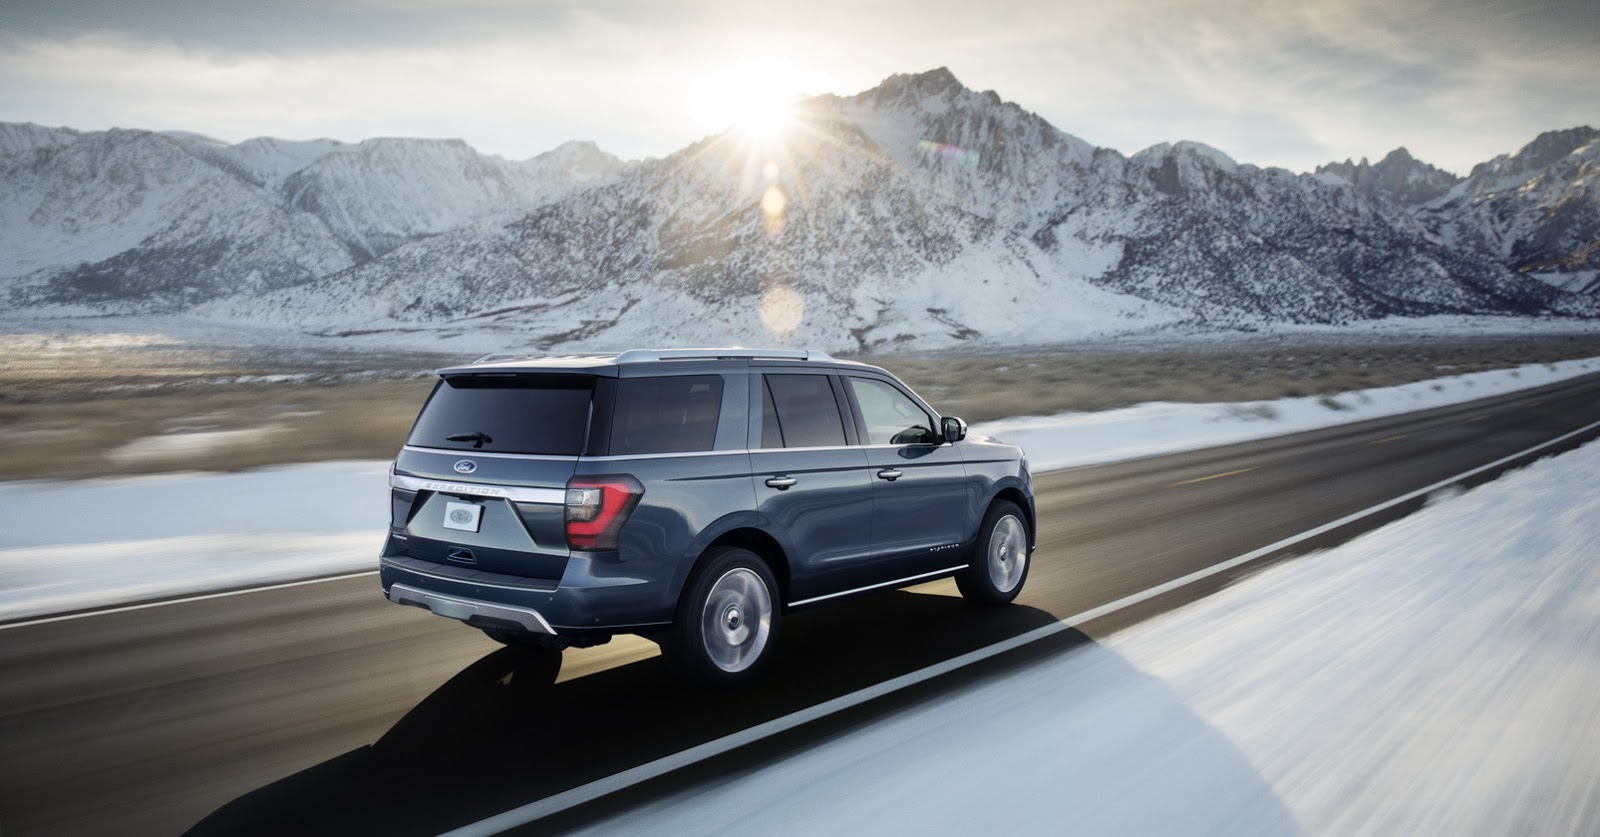 2018 Ford Expedition Sheds 300 Pounds, EL Now Called Expedition Max - autoevolution